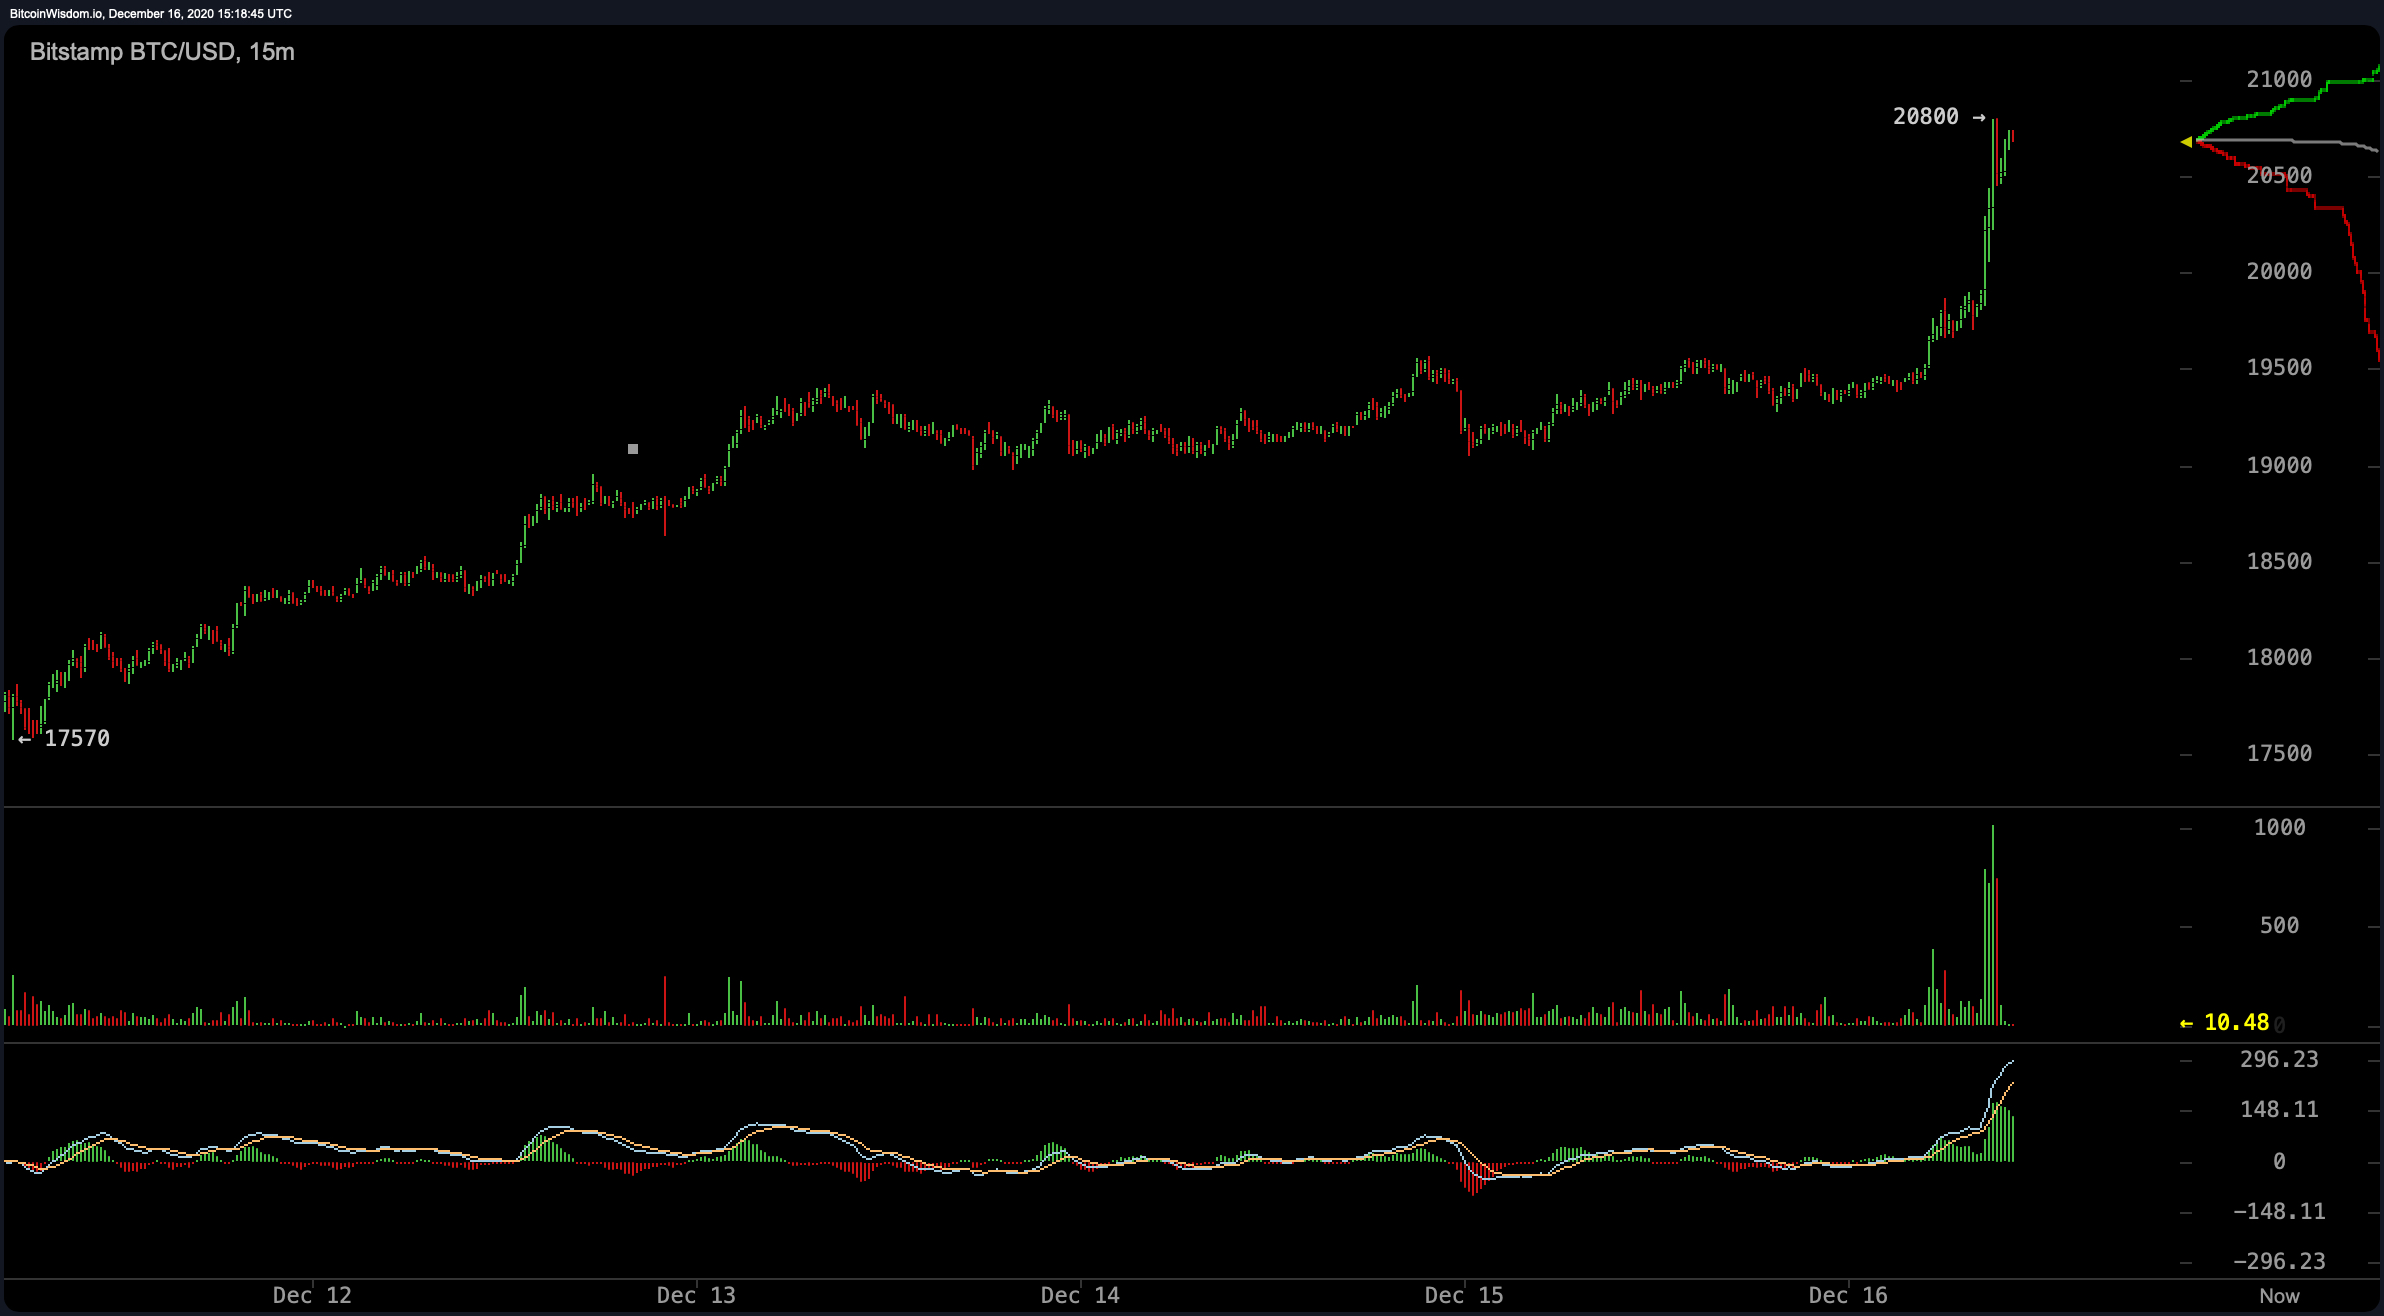 Market Update: Bitcoin Price Hits New All-Time High Over $20k